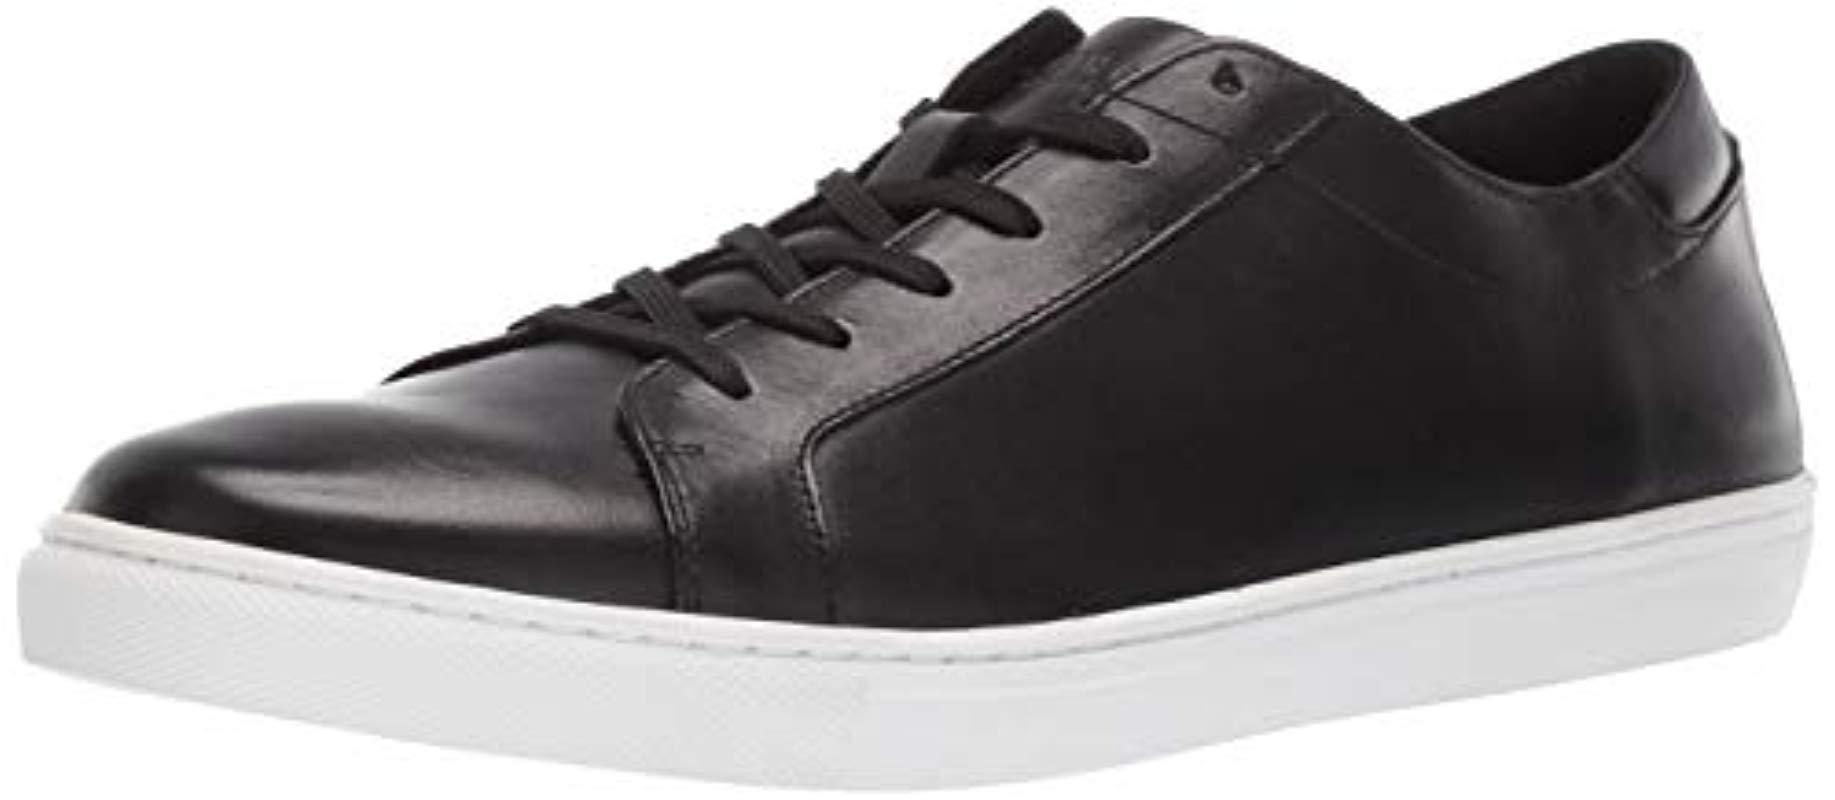 4564df885744 Lyst - Kenneth Cole Kam Pride Sneaker in Black for Men